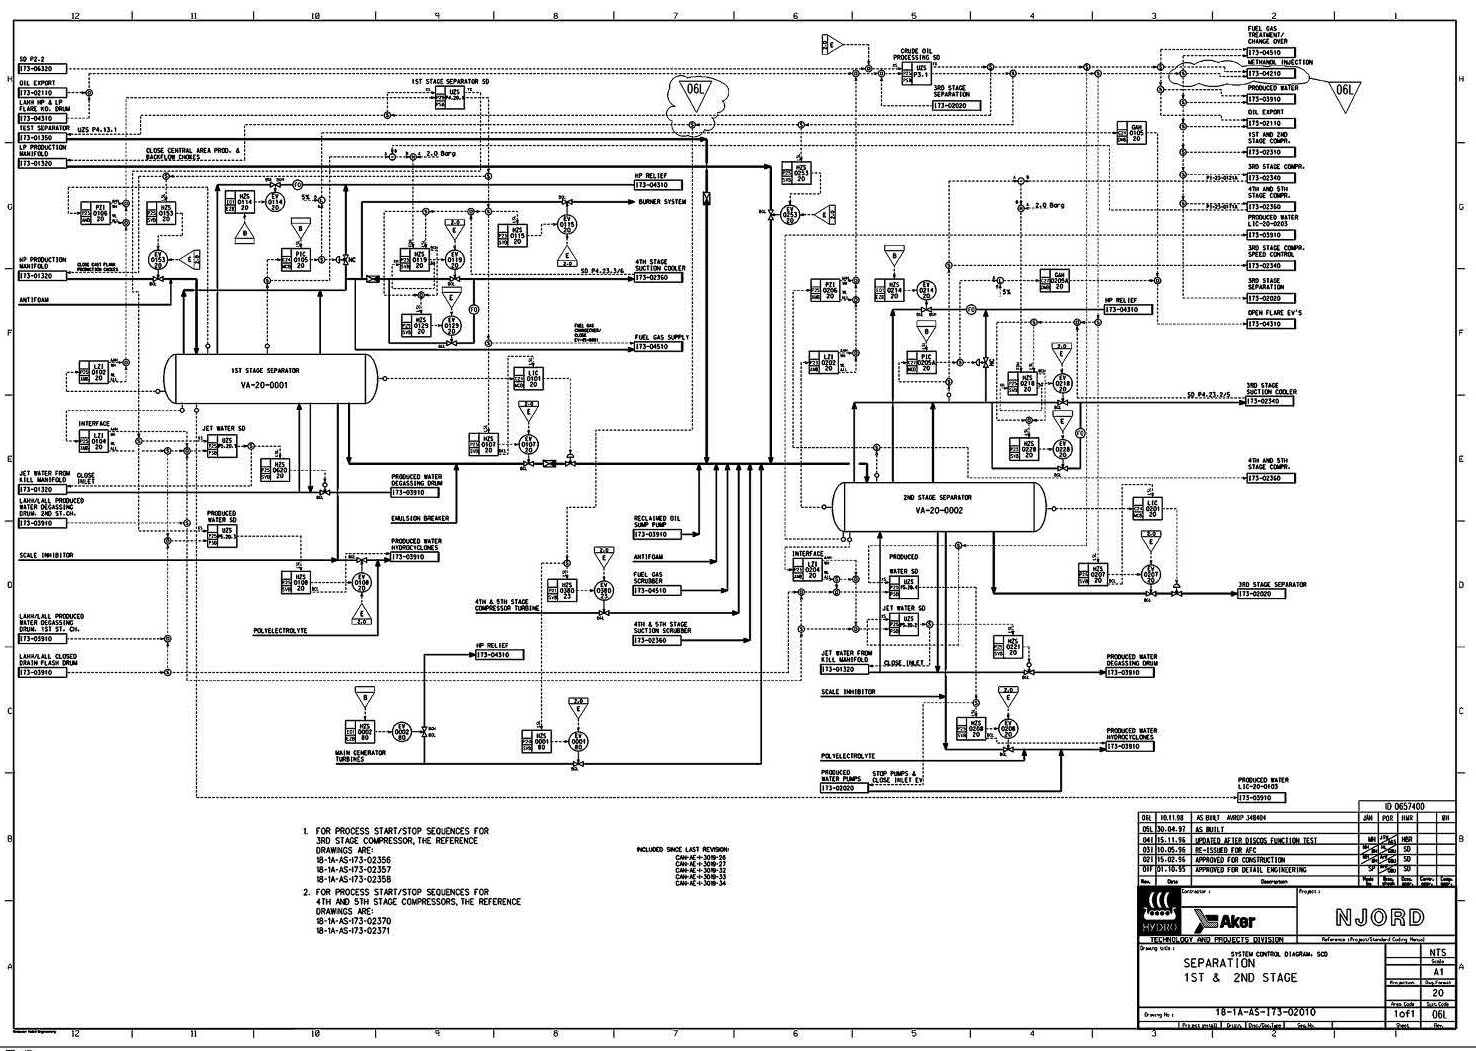 oilfield wiring diagrams petroleum diagram wiring diagram